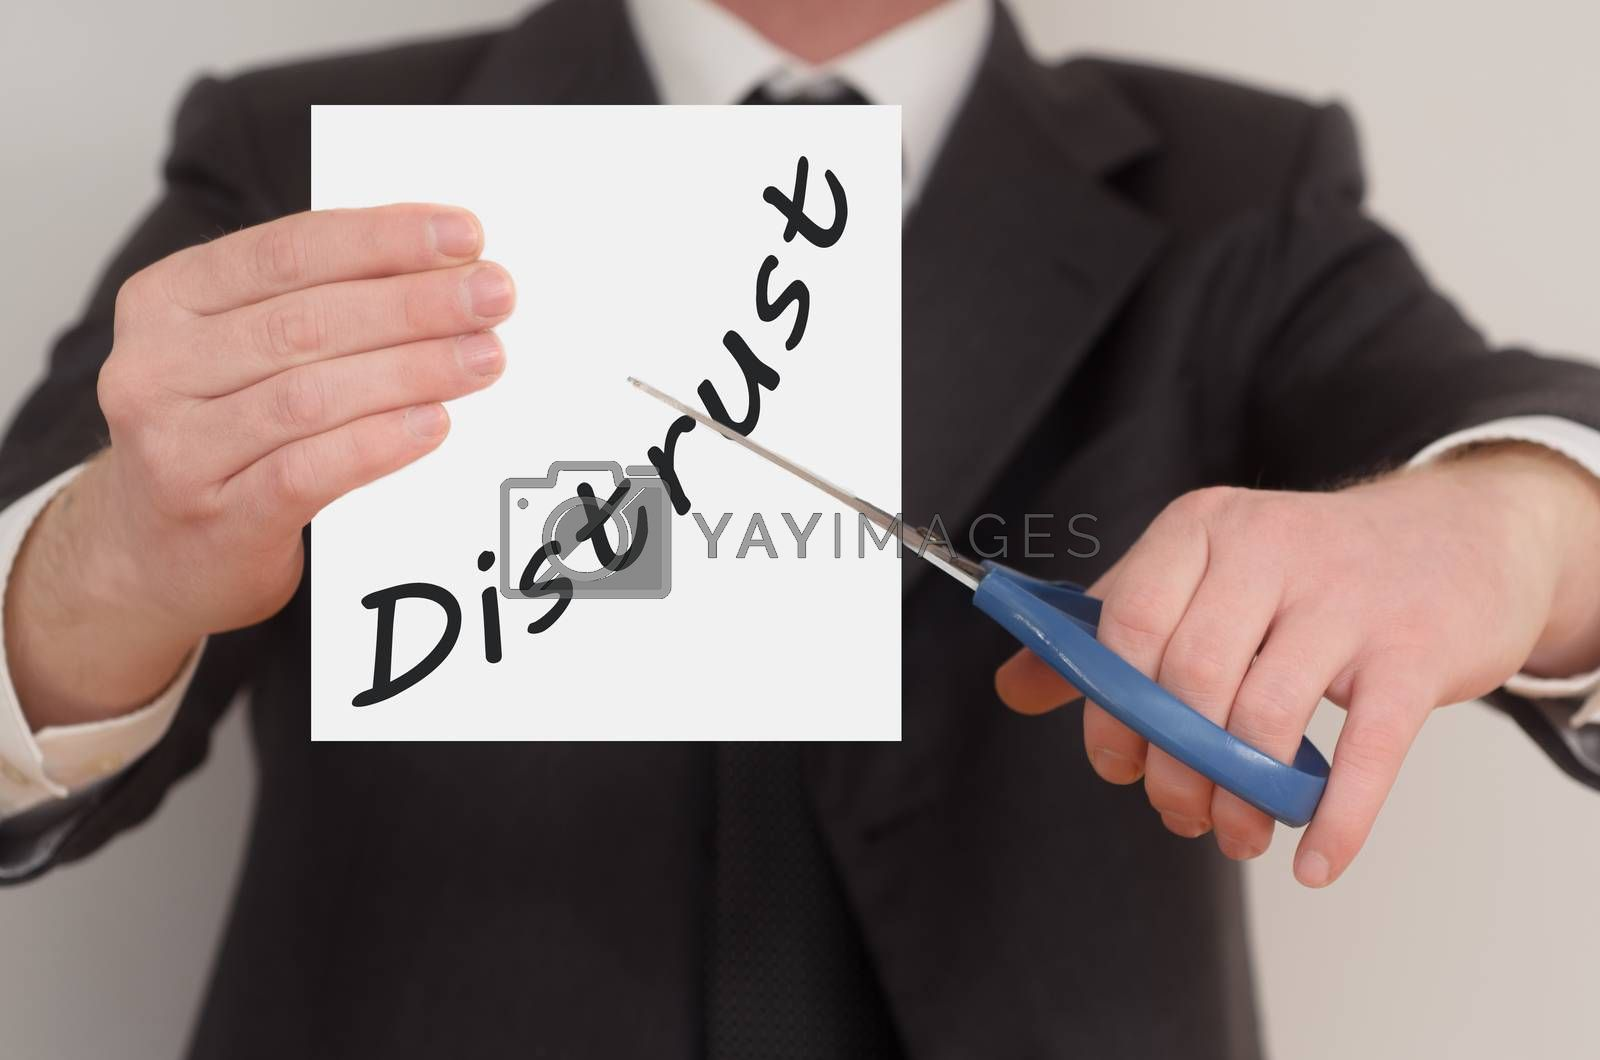 Distrust, man in suit cutting text on paper with scissors